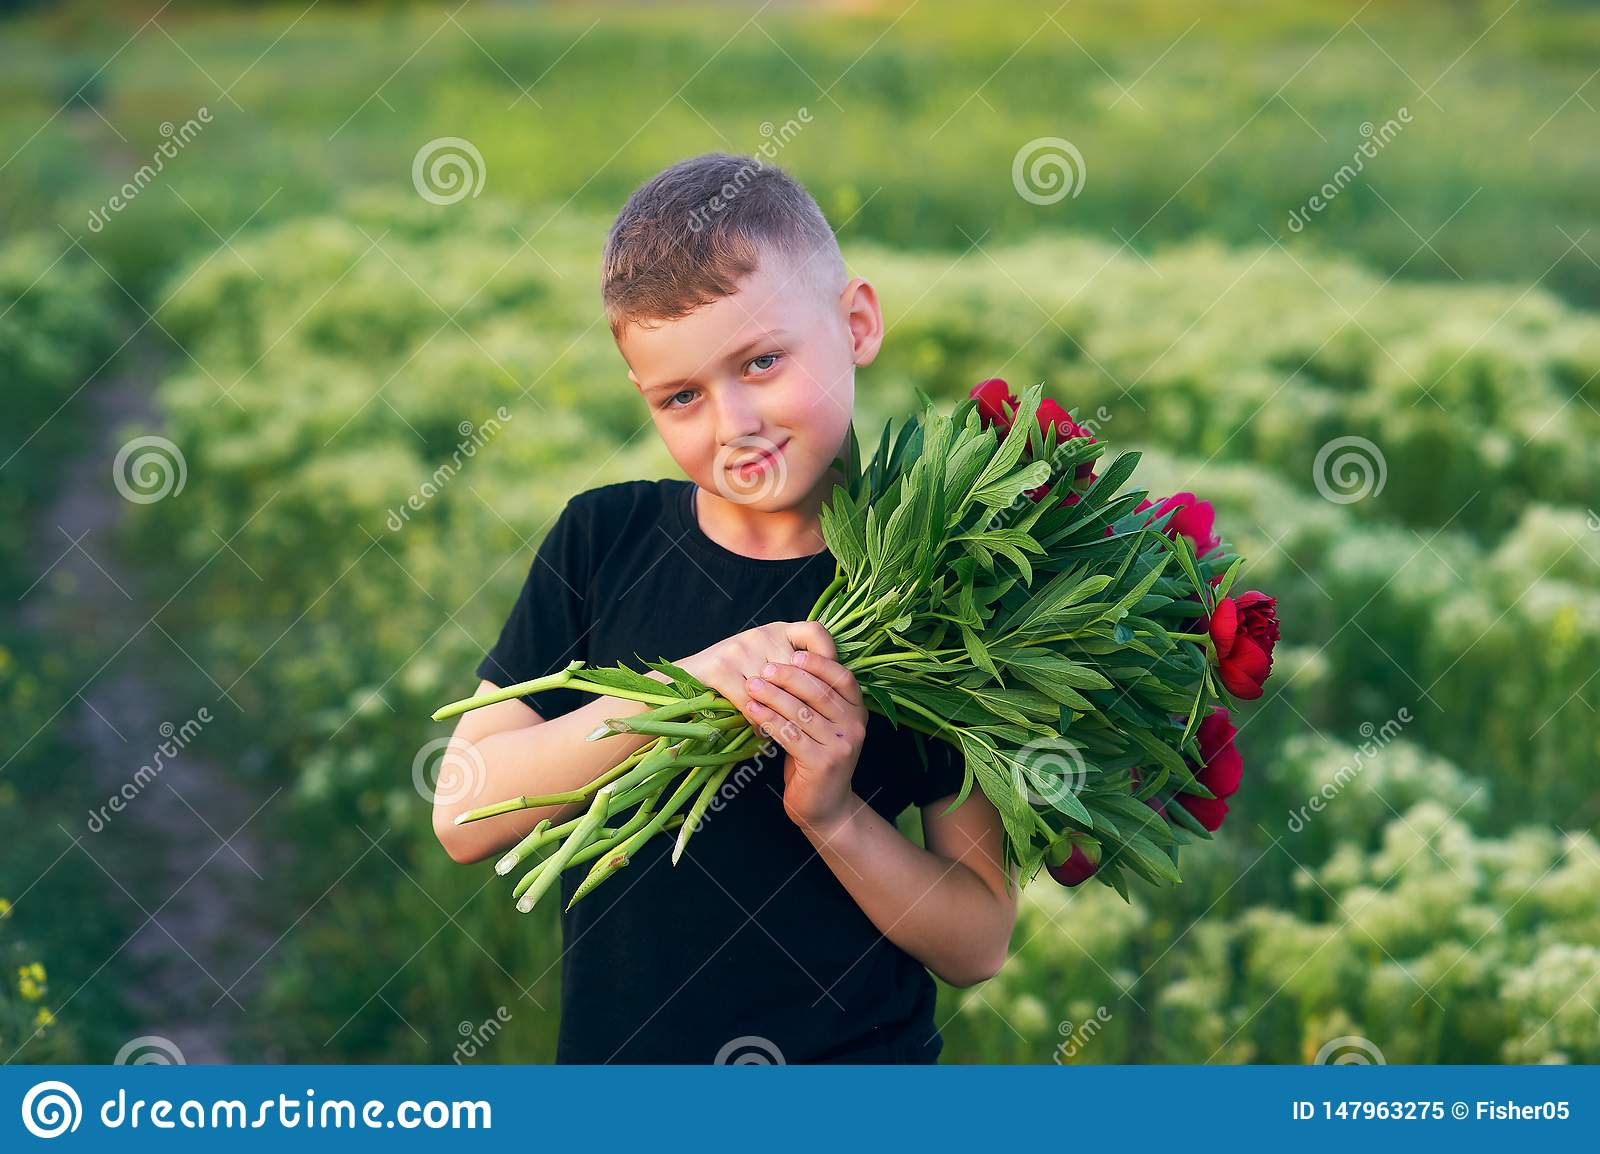 Outdoor portrait of a boy on a walk with peony flowers